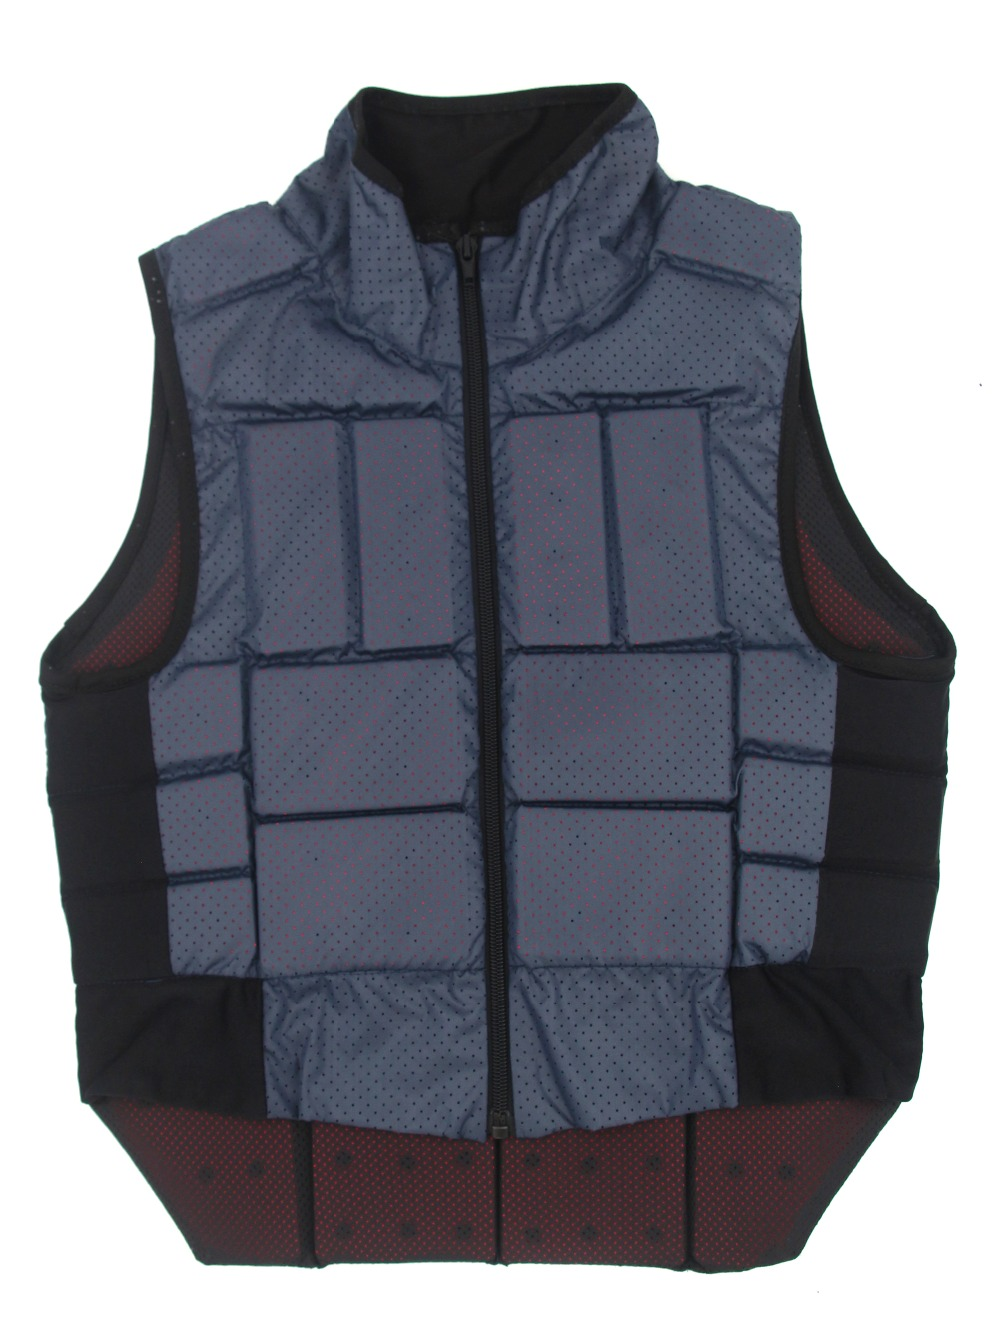 Horse Riding Vest Equestrian Vest Jacket Safety Body Protector Horse High Quality For Horse Racing Vest Horse Riding Equipment